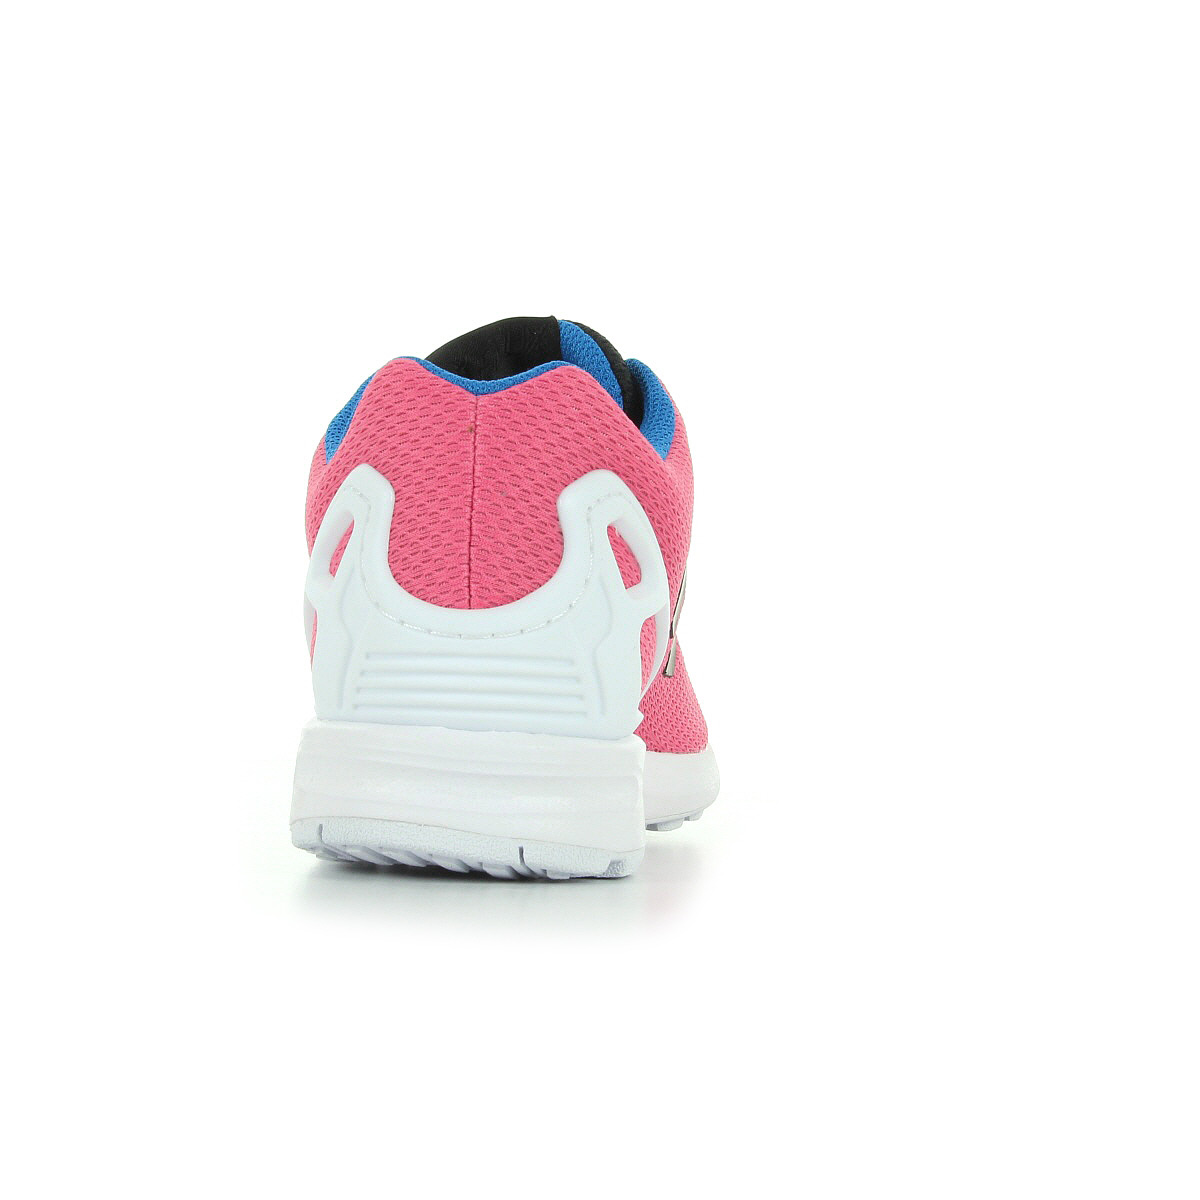 adidas ZX Flux B34502, Baskets mode femme